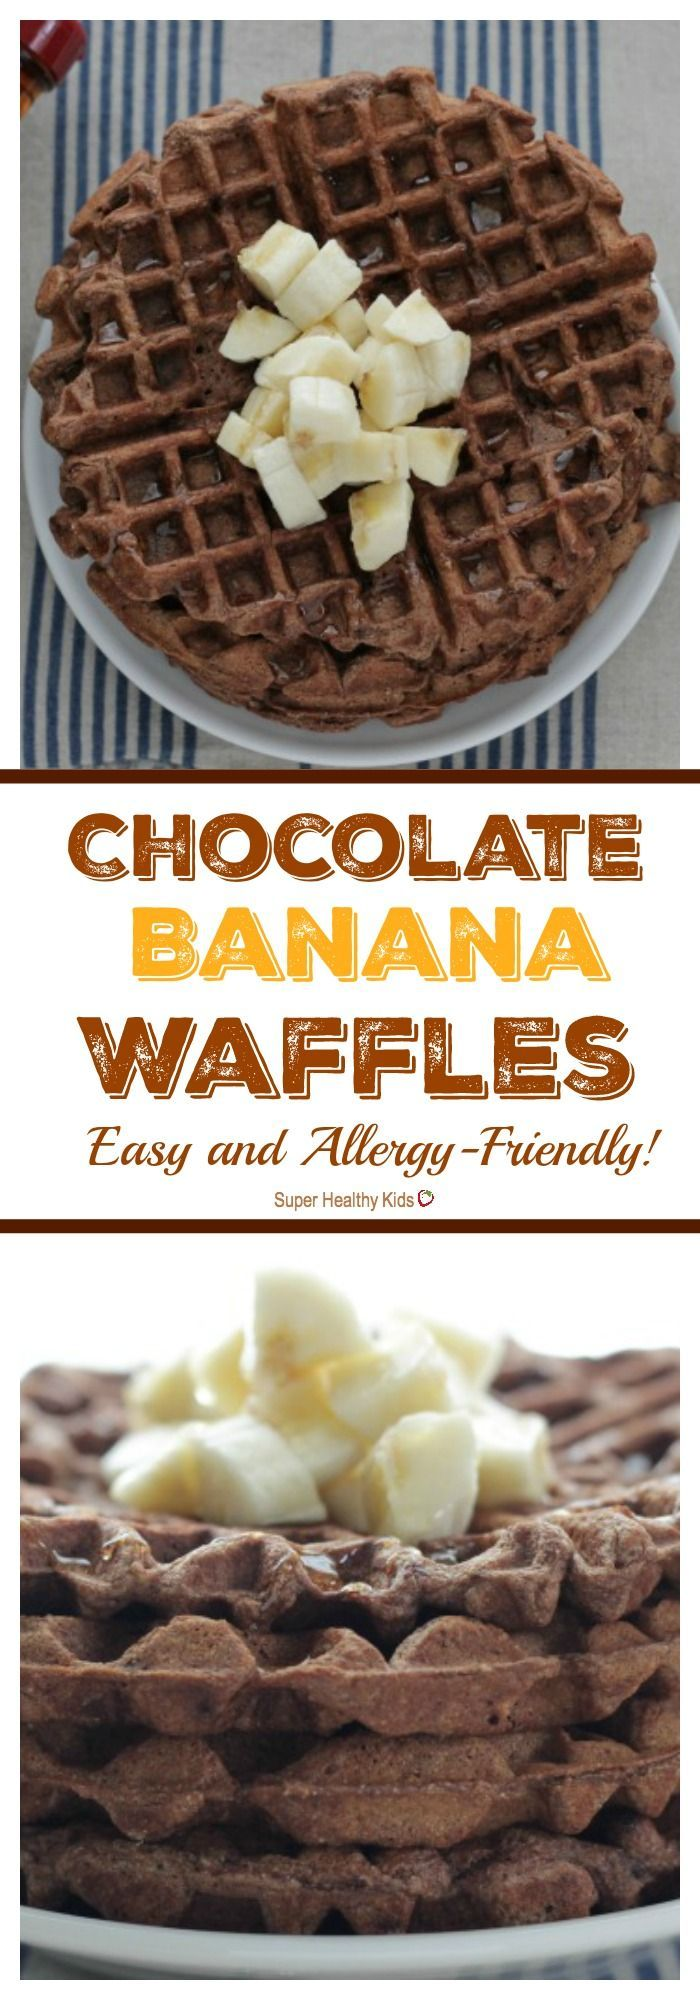 FOOD - Healthy Chocolate Banana Waffles. A MUST have recipe! http://www.superhealthykids.com/chocolate-banana-waffles-easy-allergy-friendly/